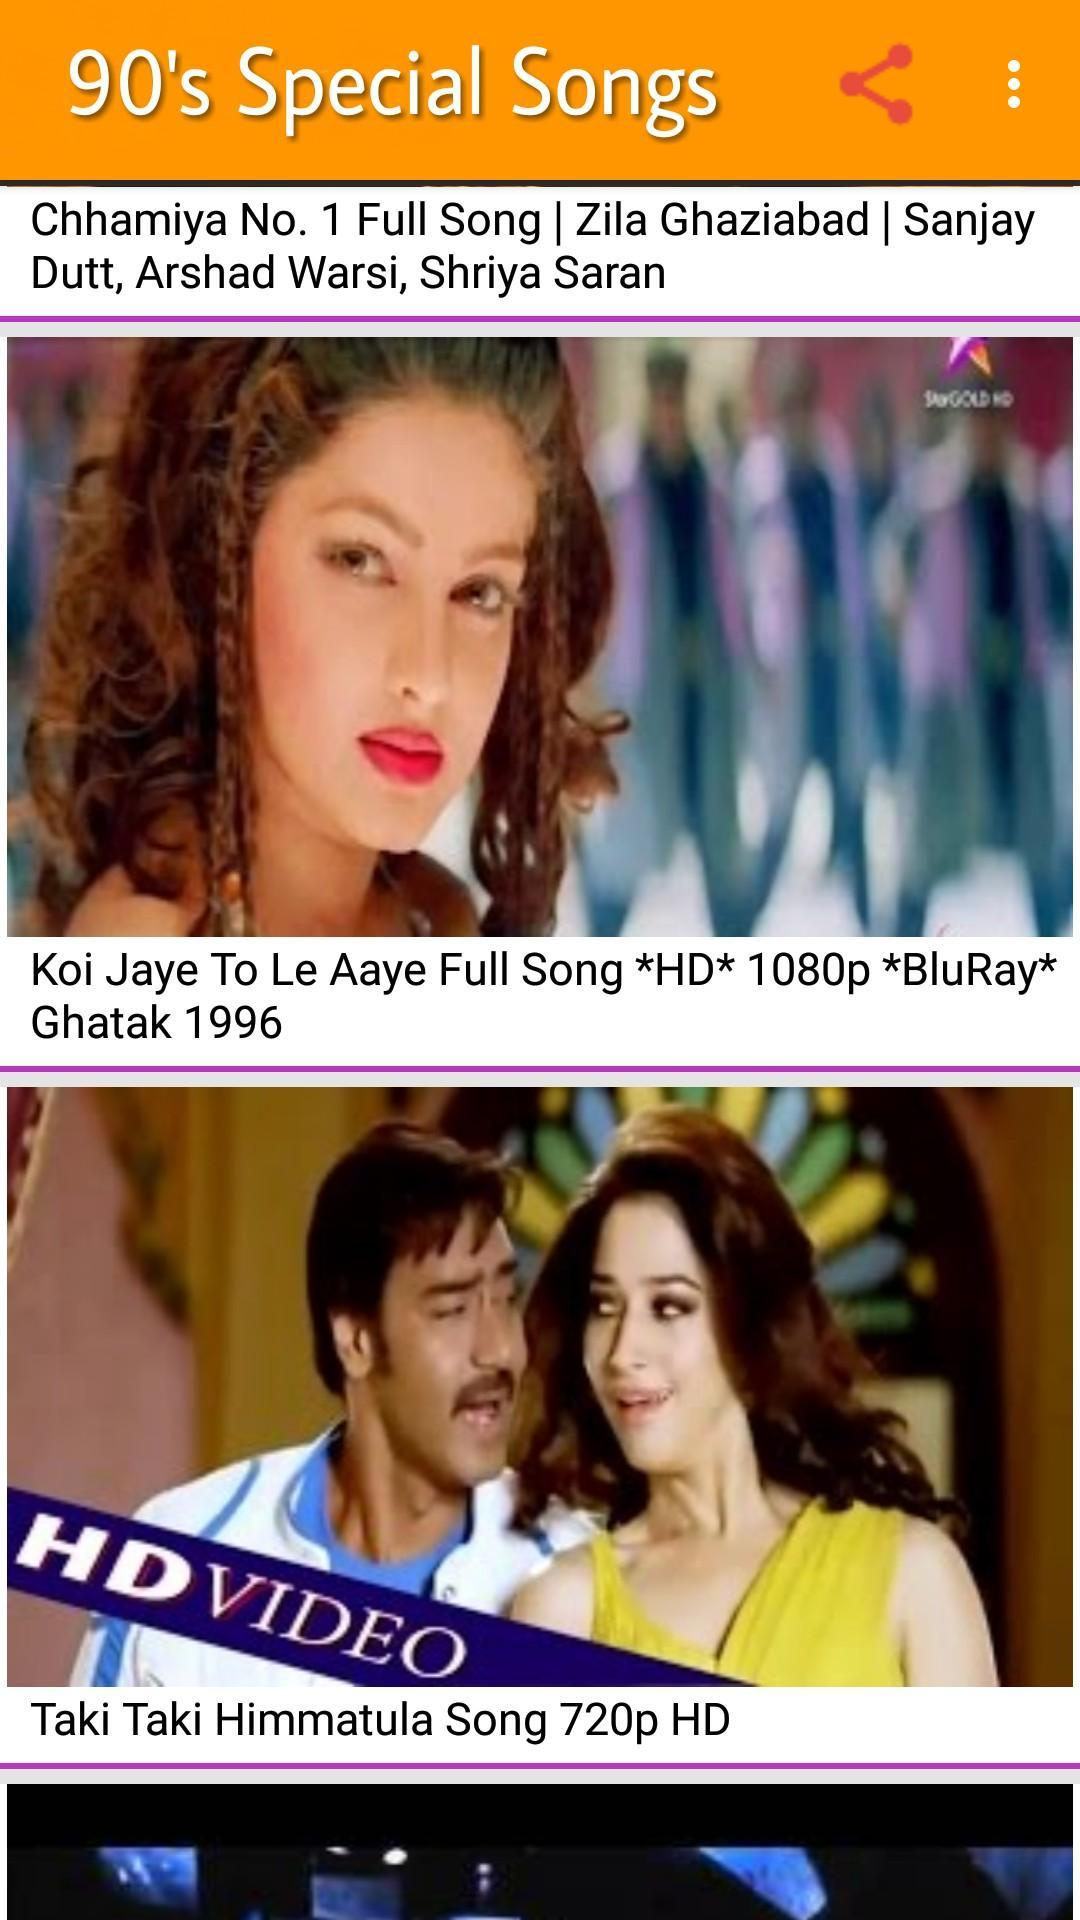 100 BollyTop Item Girls for Android - APK Download